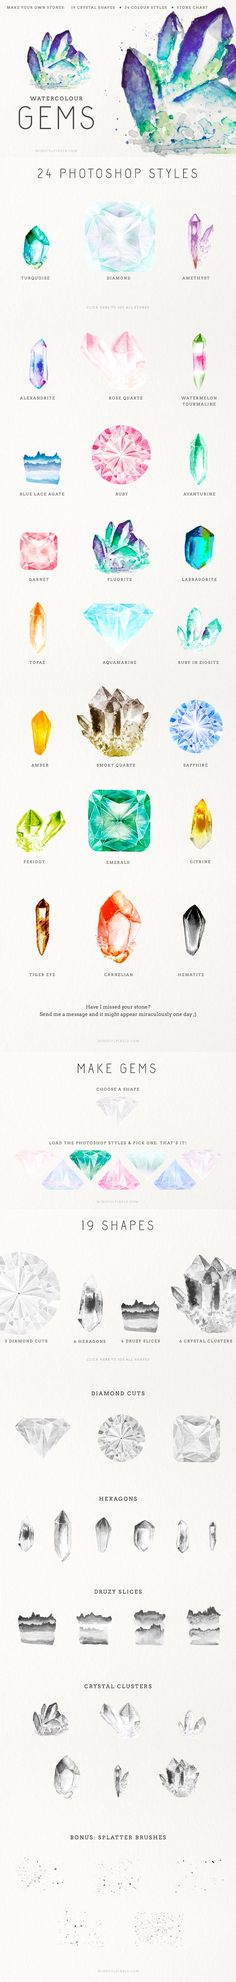 Gem Creator Kit Watercolor Crystal Clusters Clip Art Wedding Invitation Pocket Scrapbooking / Project Life / Journaling / Memory Keeping Watercolour Painting, Painting & Drawing, Watercolor Ideas, Watercolours, Gem Drawing, Watercolor Moon, Watercolor Wedding, Art Tutorials, Drawing Tutorials